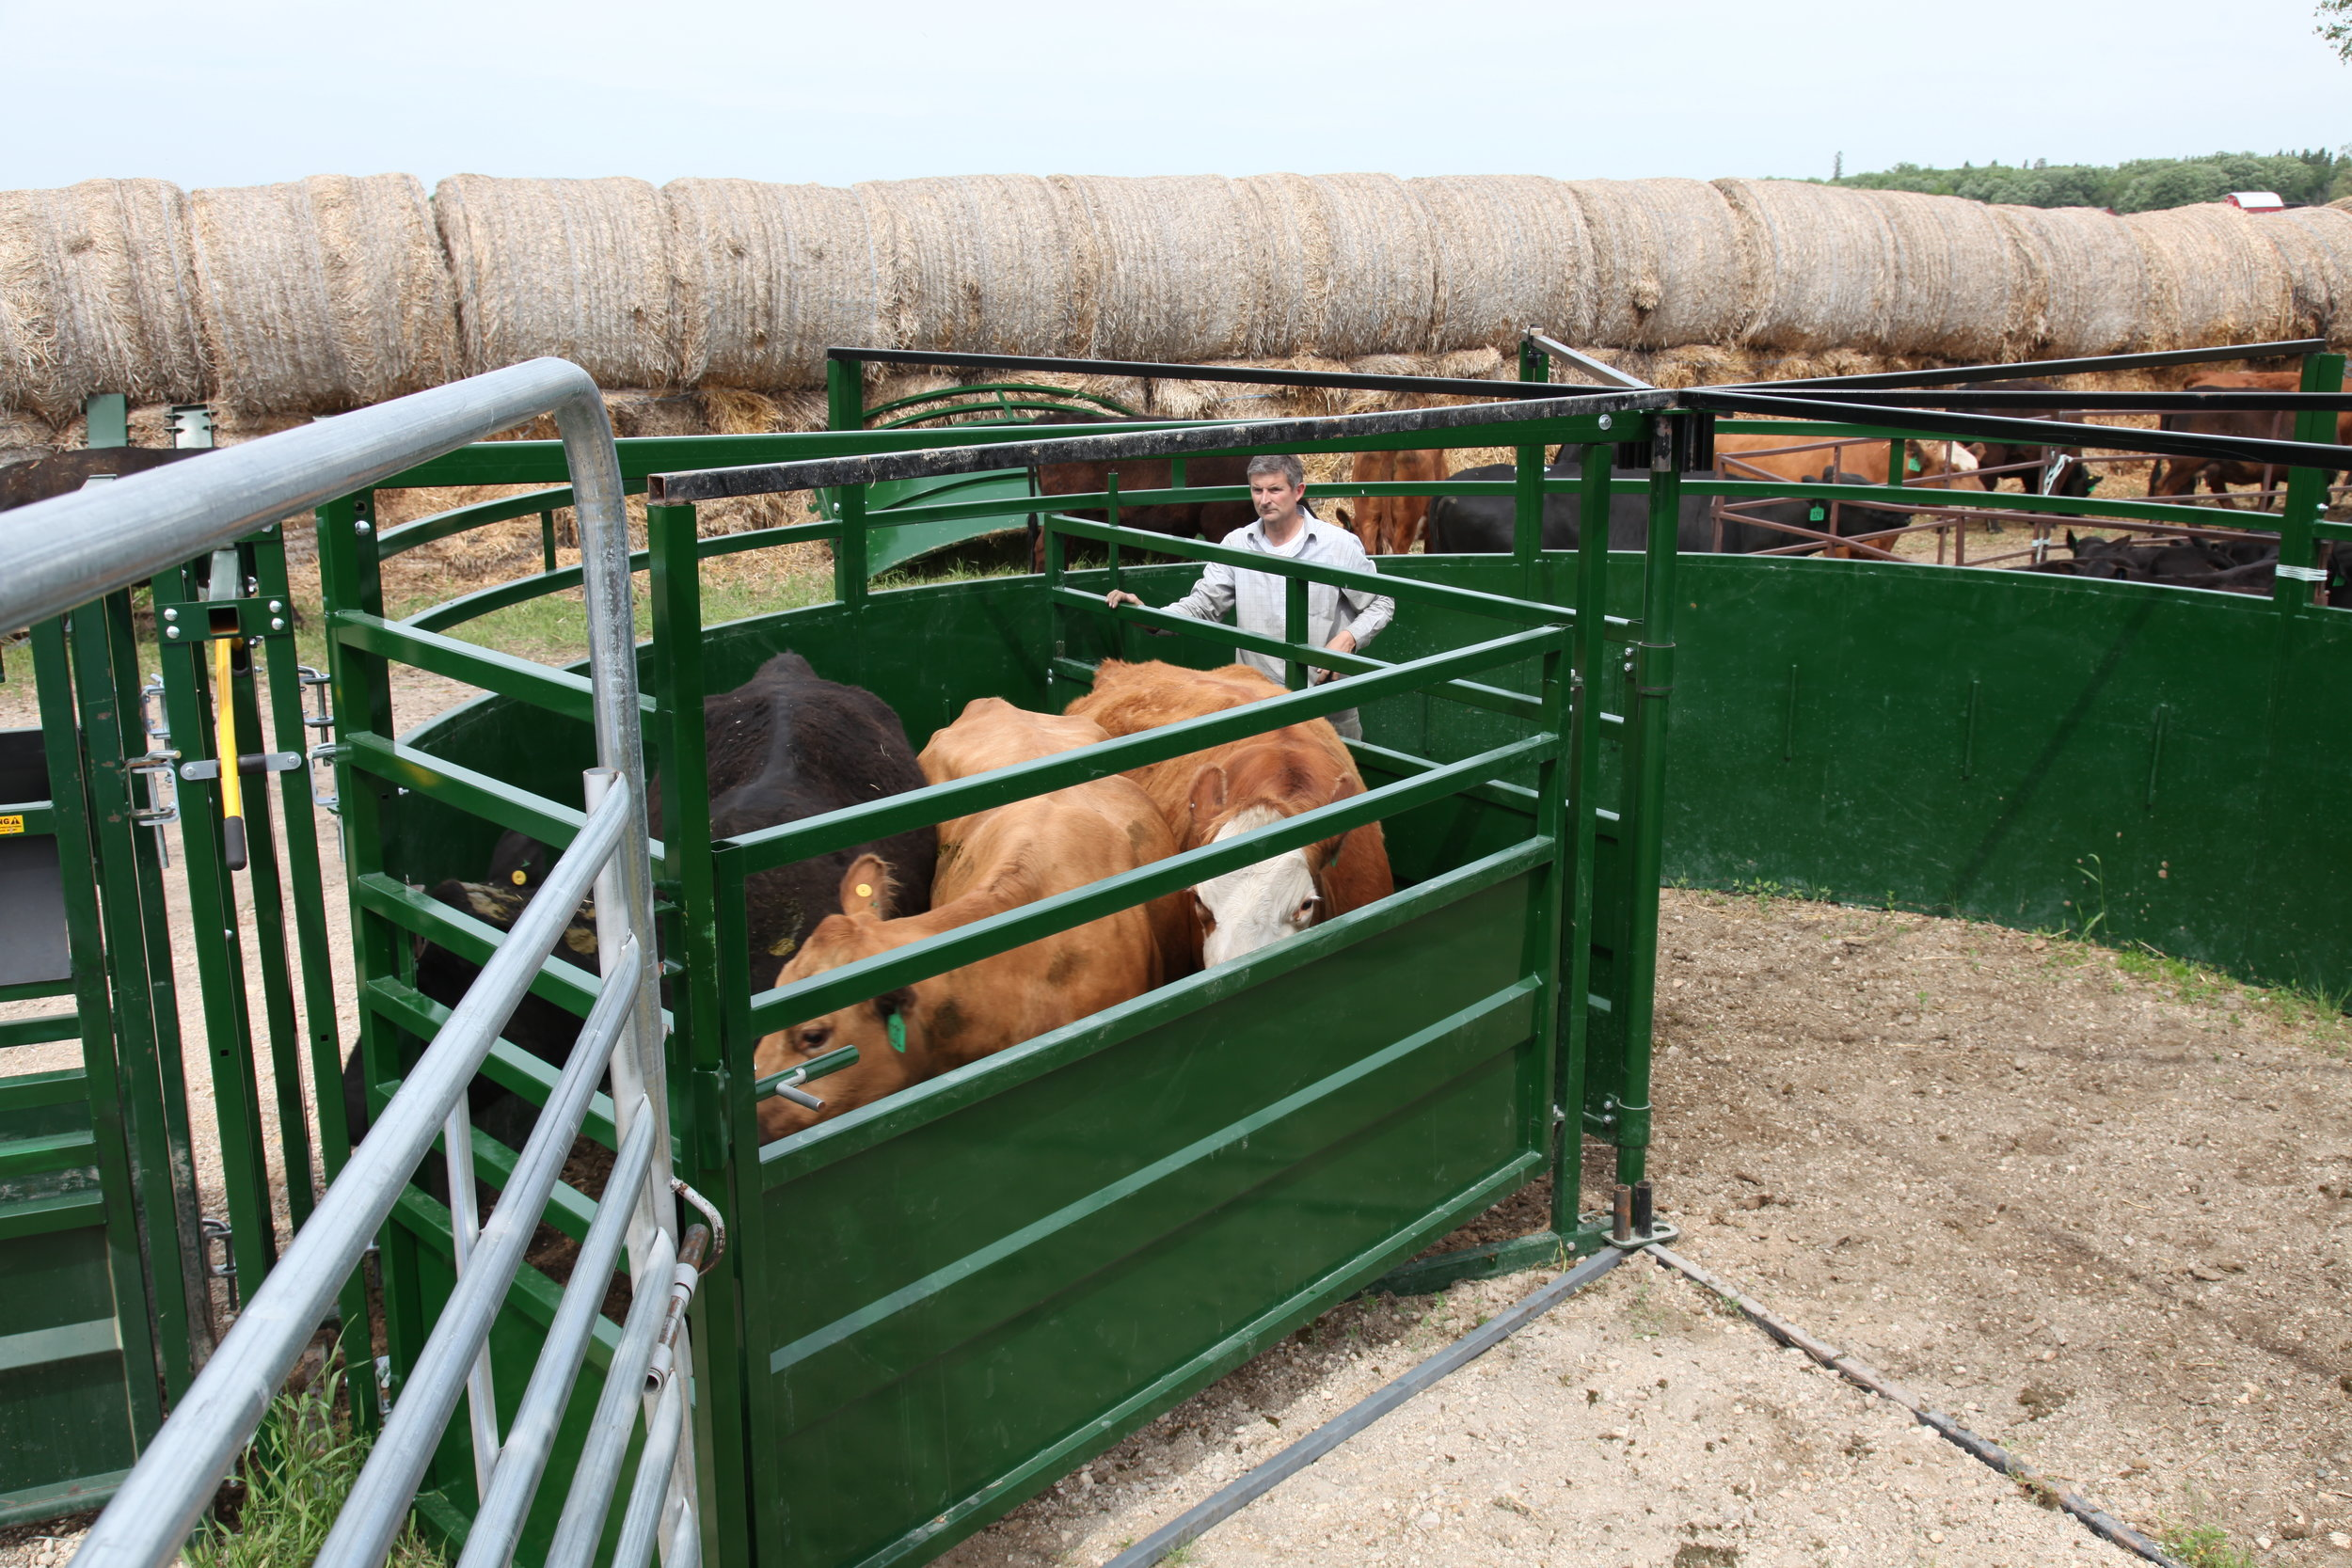 By only bringing small batches of cattle into the forcing pen at a time, handlers can utilise flight zones to move animals more efficiently. The BudFlow uses natural cattle behaviour to improve flow.